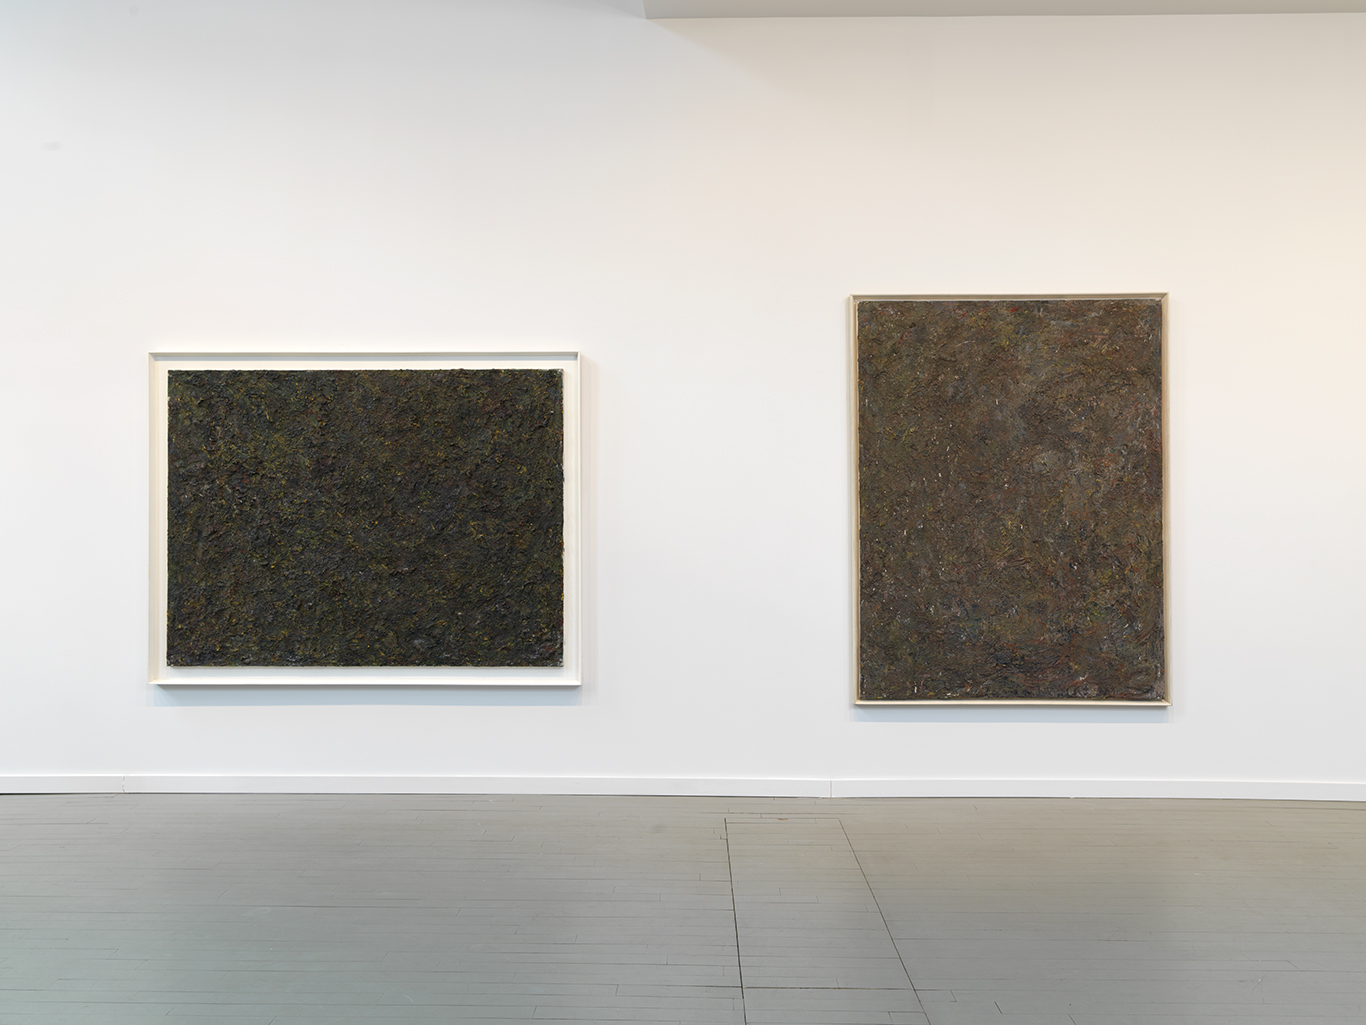 Left: Untitled, 1983 Oil on canvas 60 x 80 inches  Right: Straws, 1981 Oil on canvas 80 x 60 inches